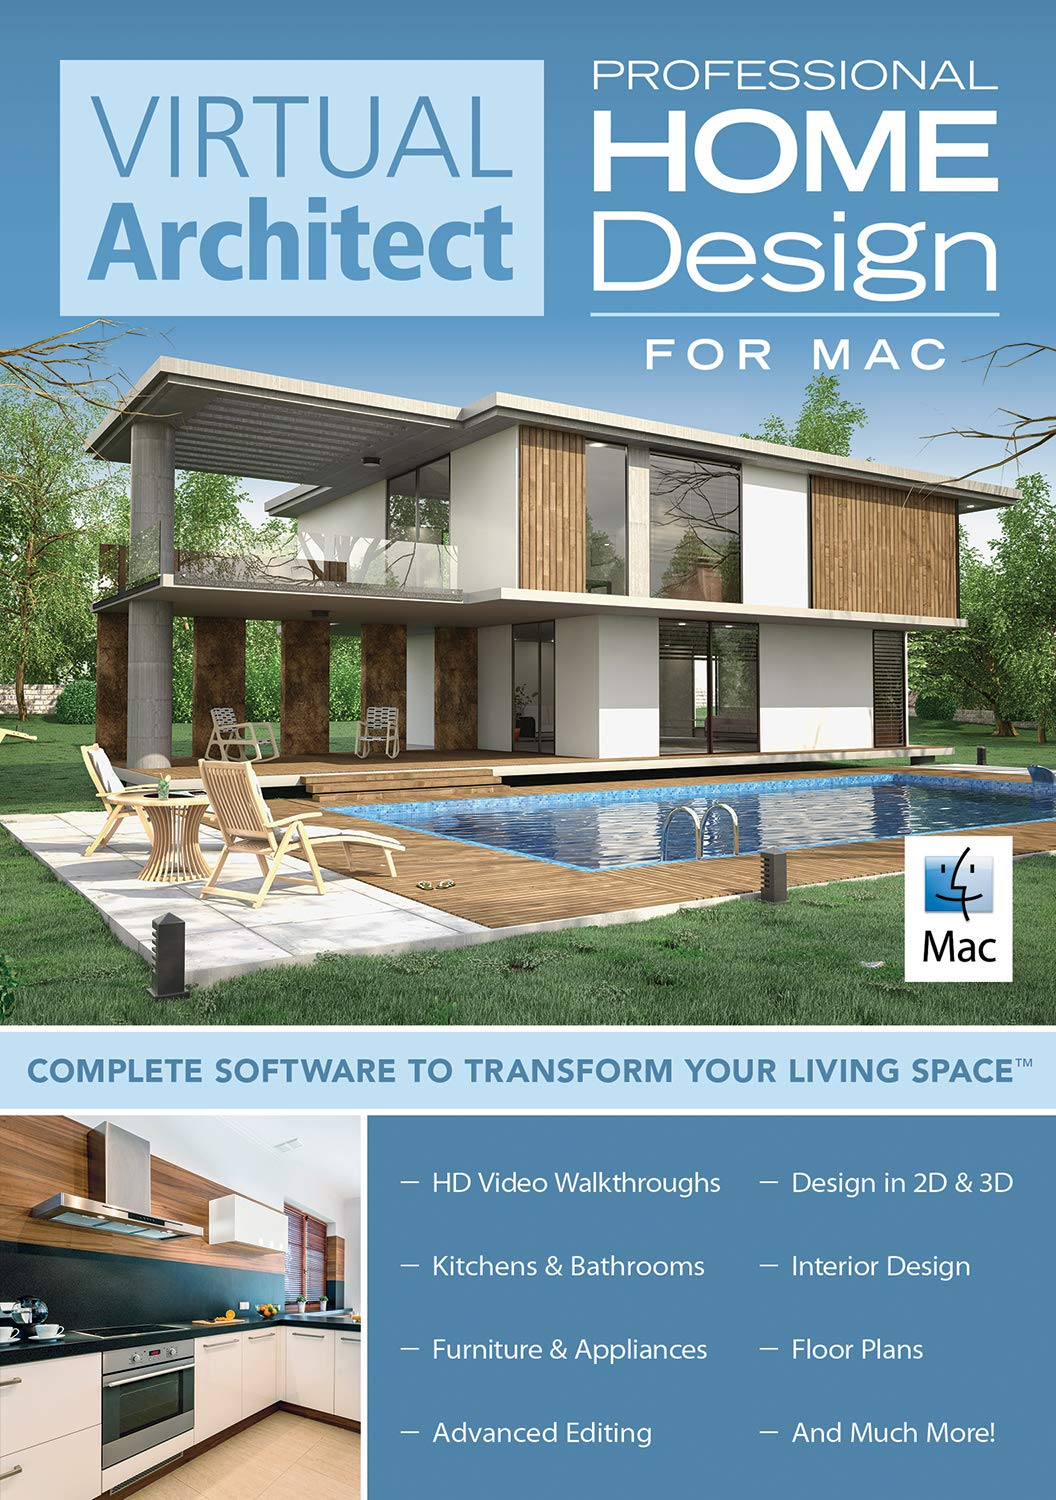 Virtual Architect Home Design for Mac Professional [Mac Download] by Avanquest